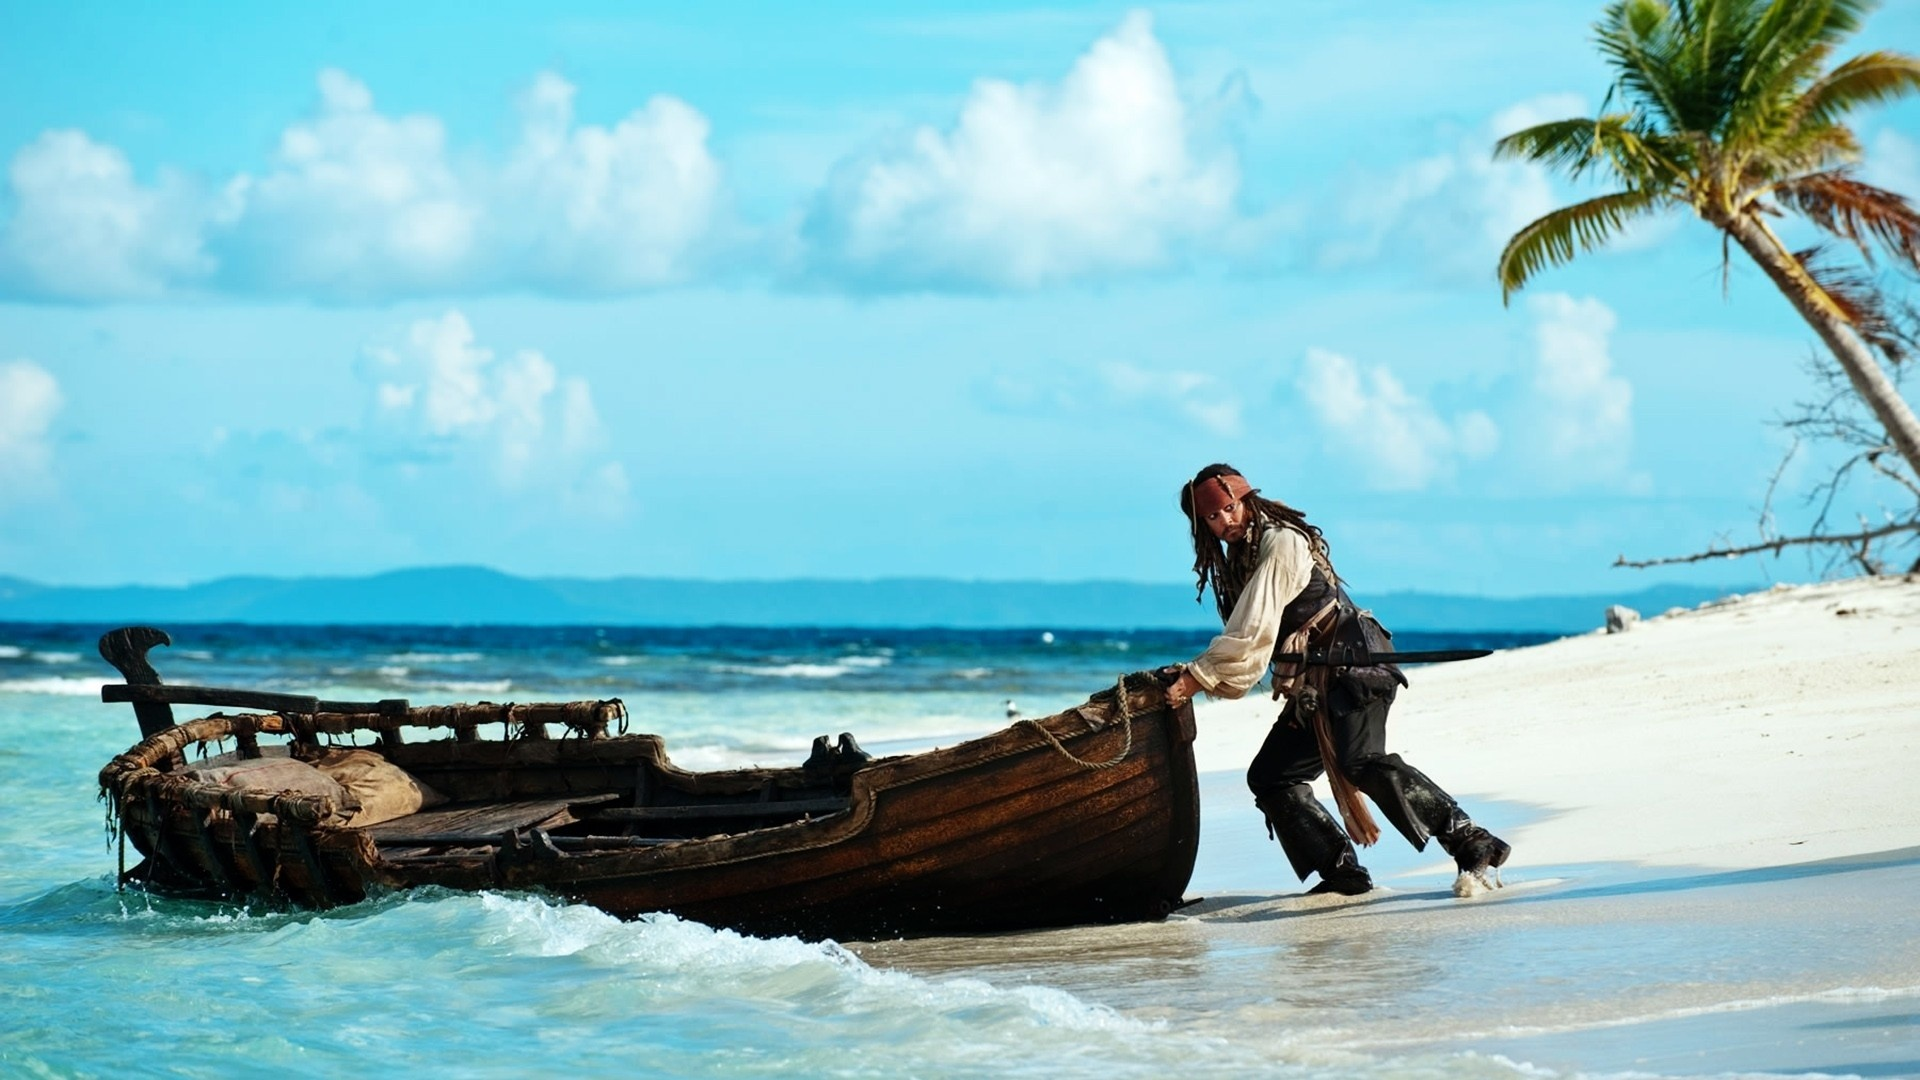 Johnny Depp In Pirates Of Caribbean HD